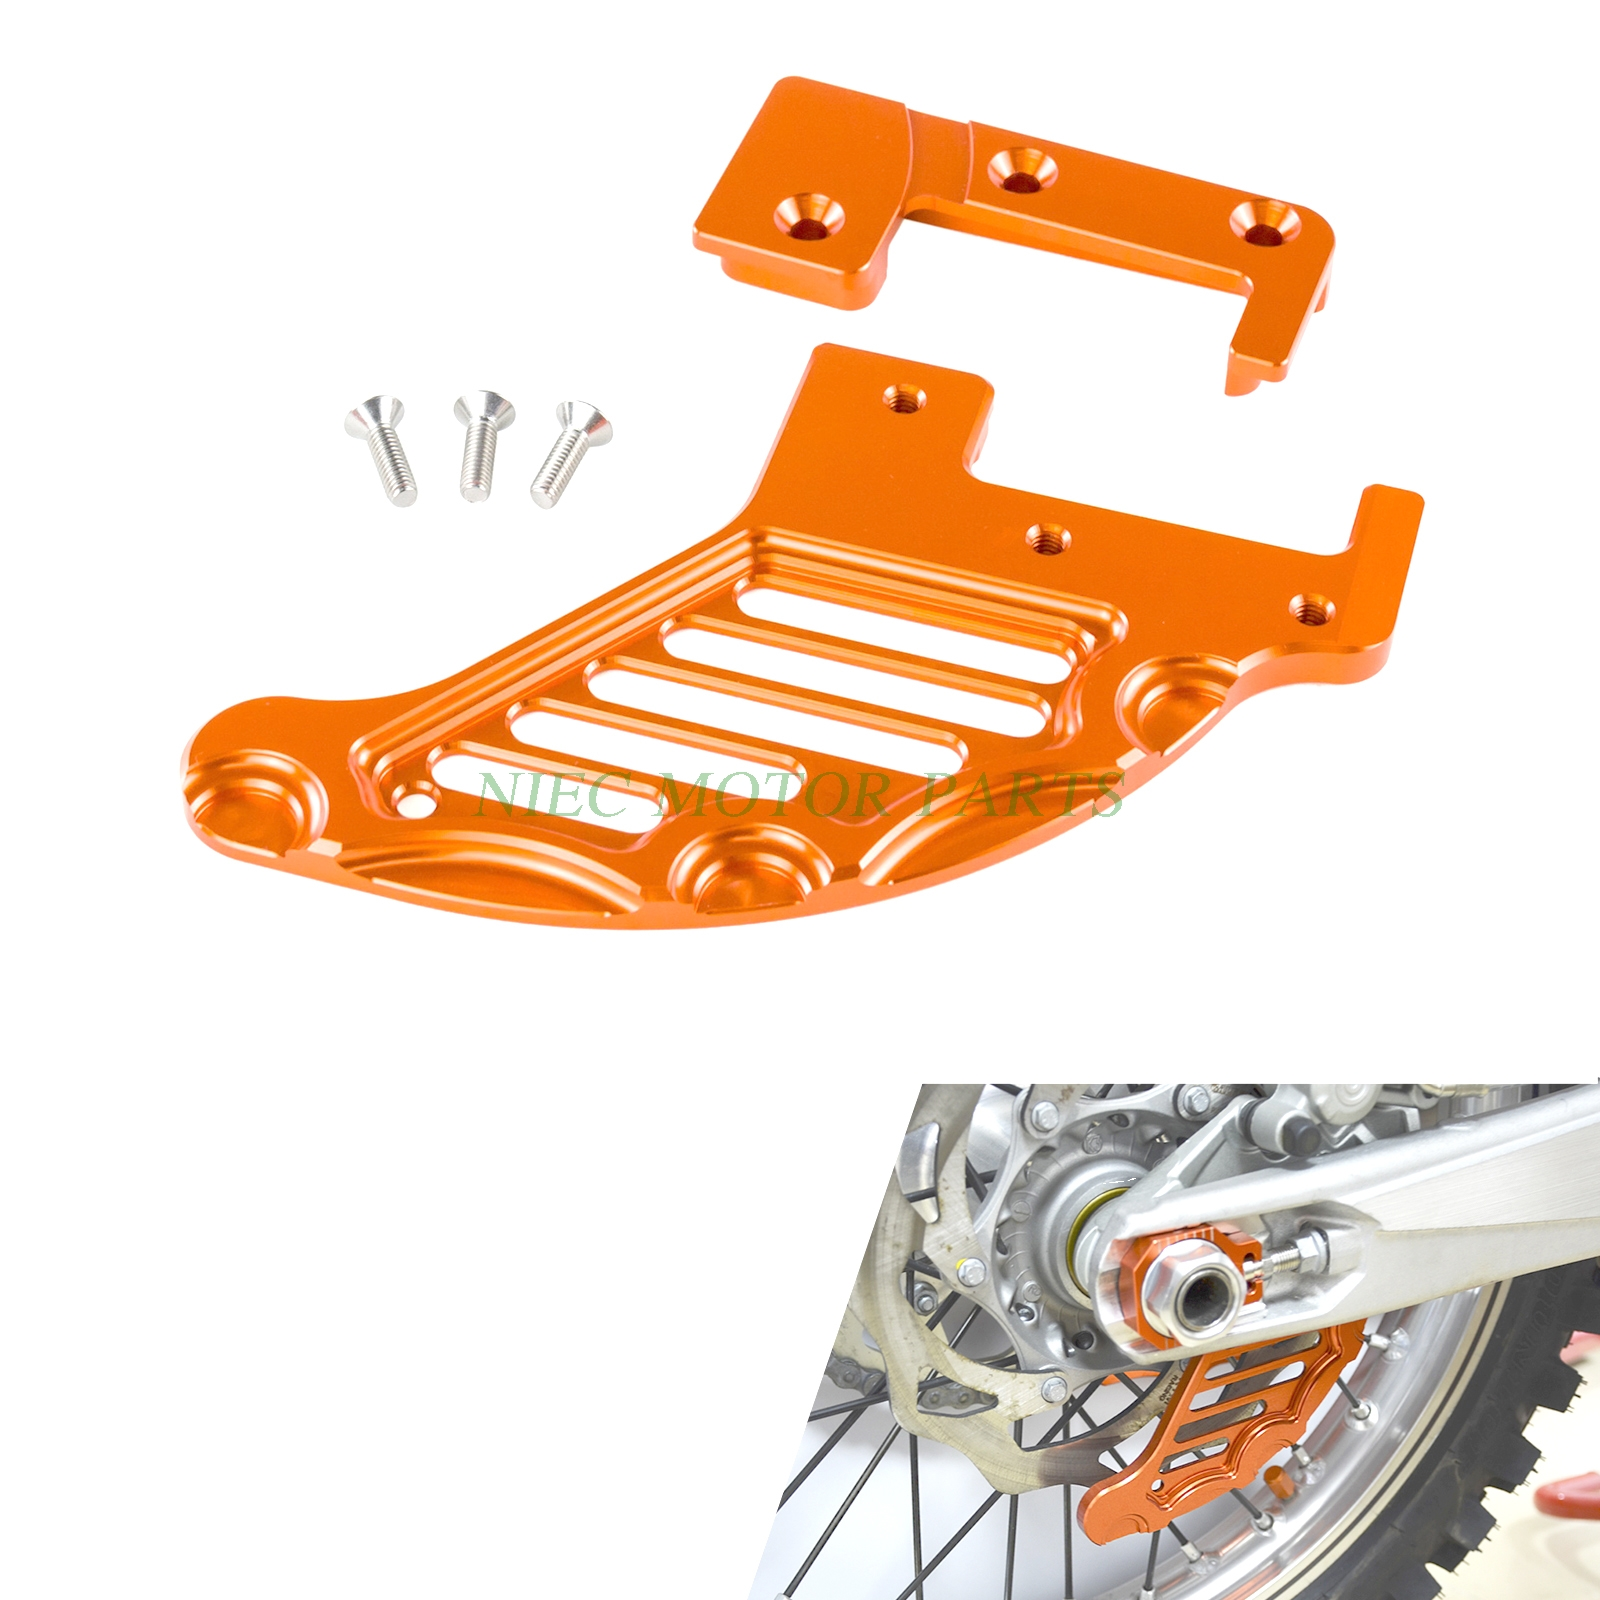 ORANGE CNC REAR BRAKE DISC GUARD For KTM EXC EXC F SX SX F XC XCF